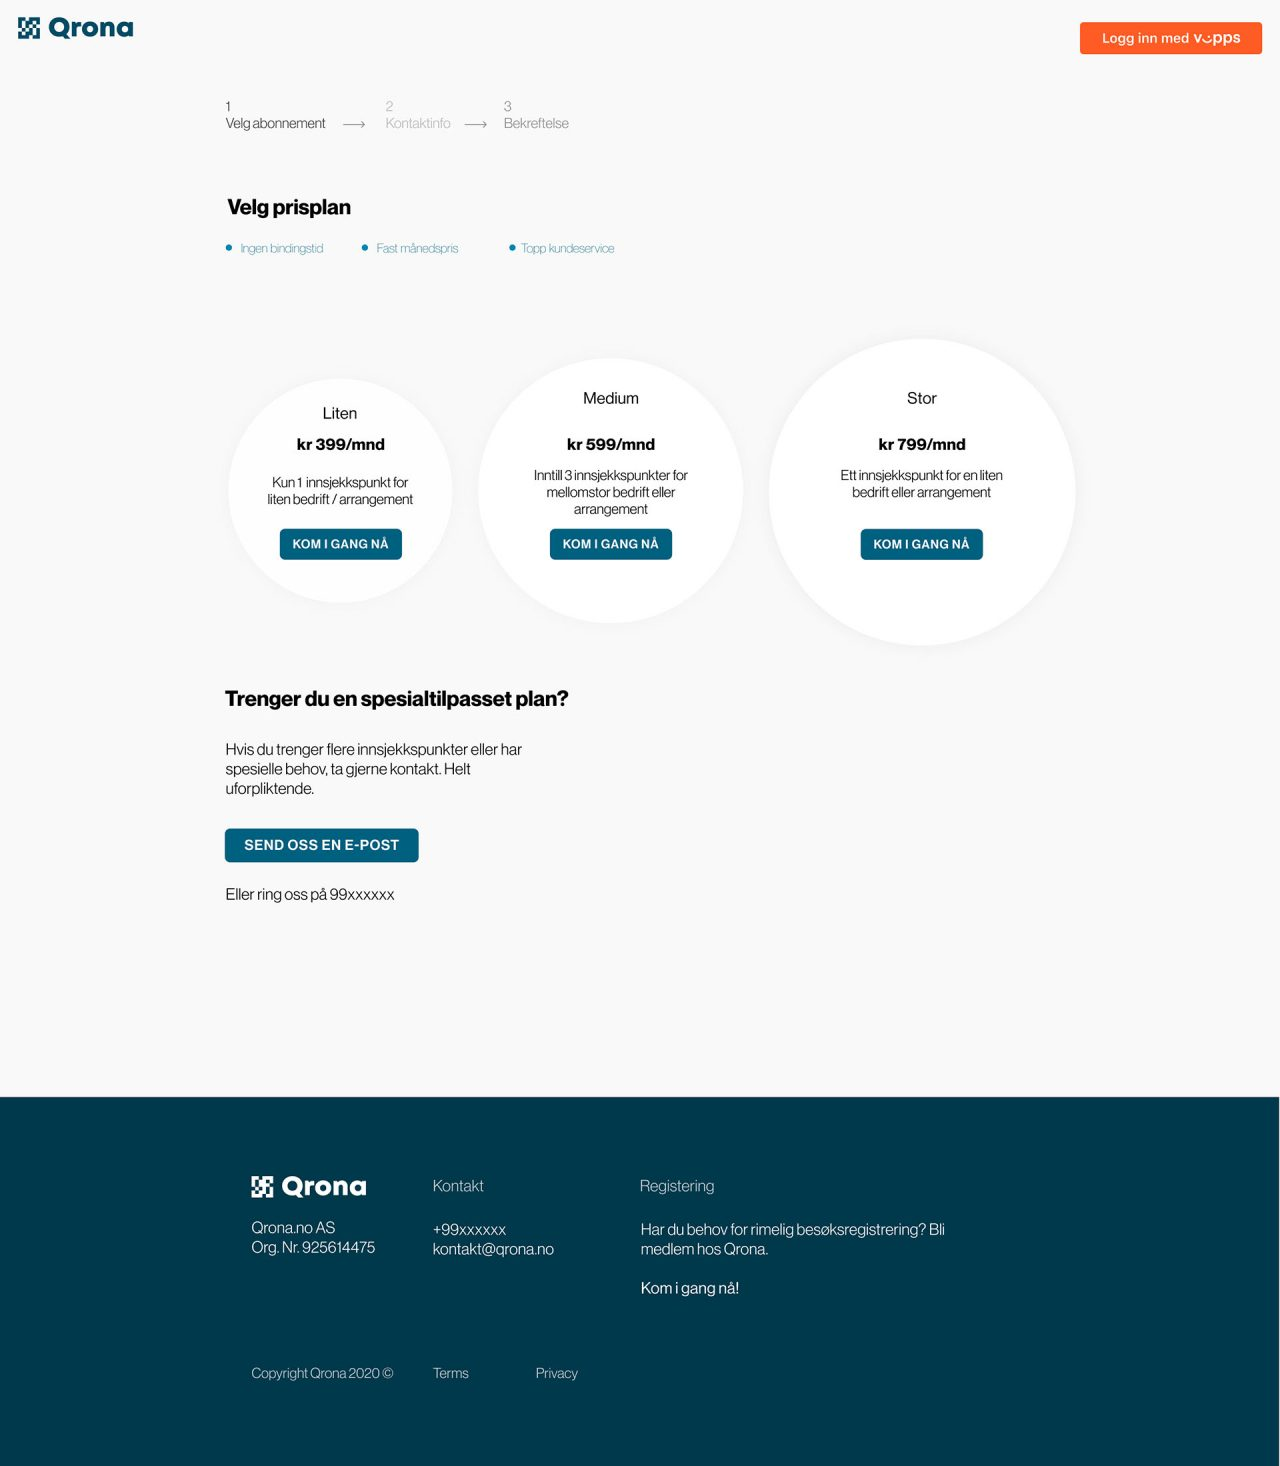 website page design for Qrona, design and development by Hable Studios